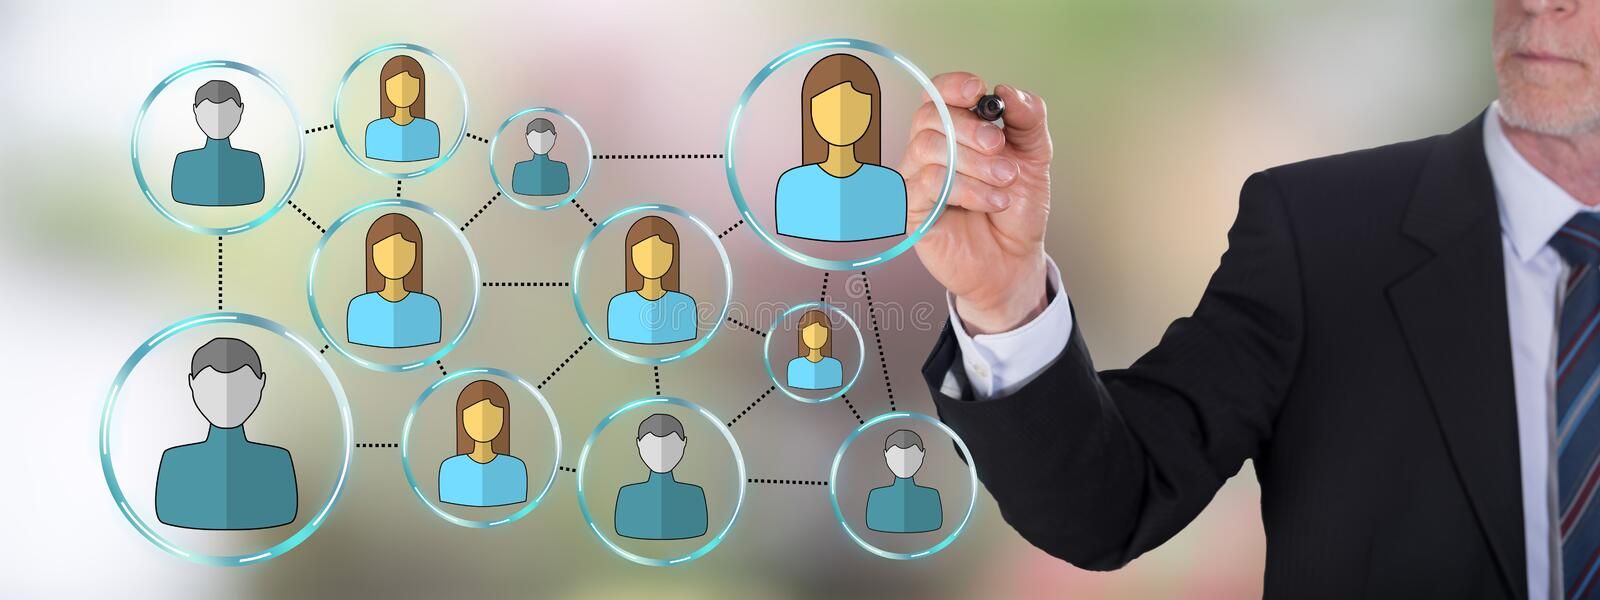 Social network concept drawn by a businessman royalty free stock photography